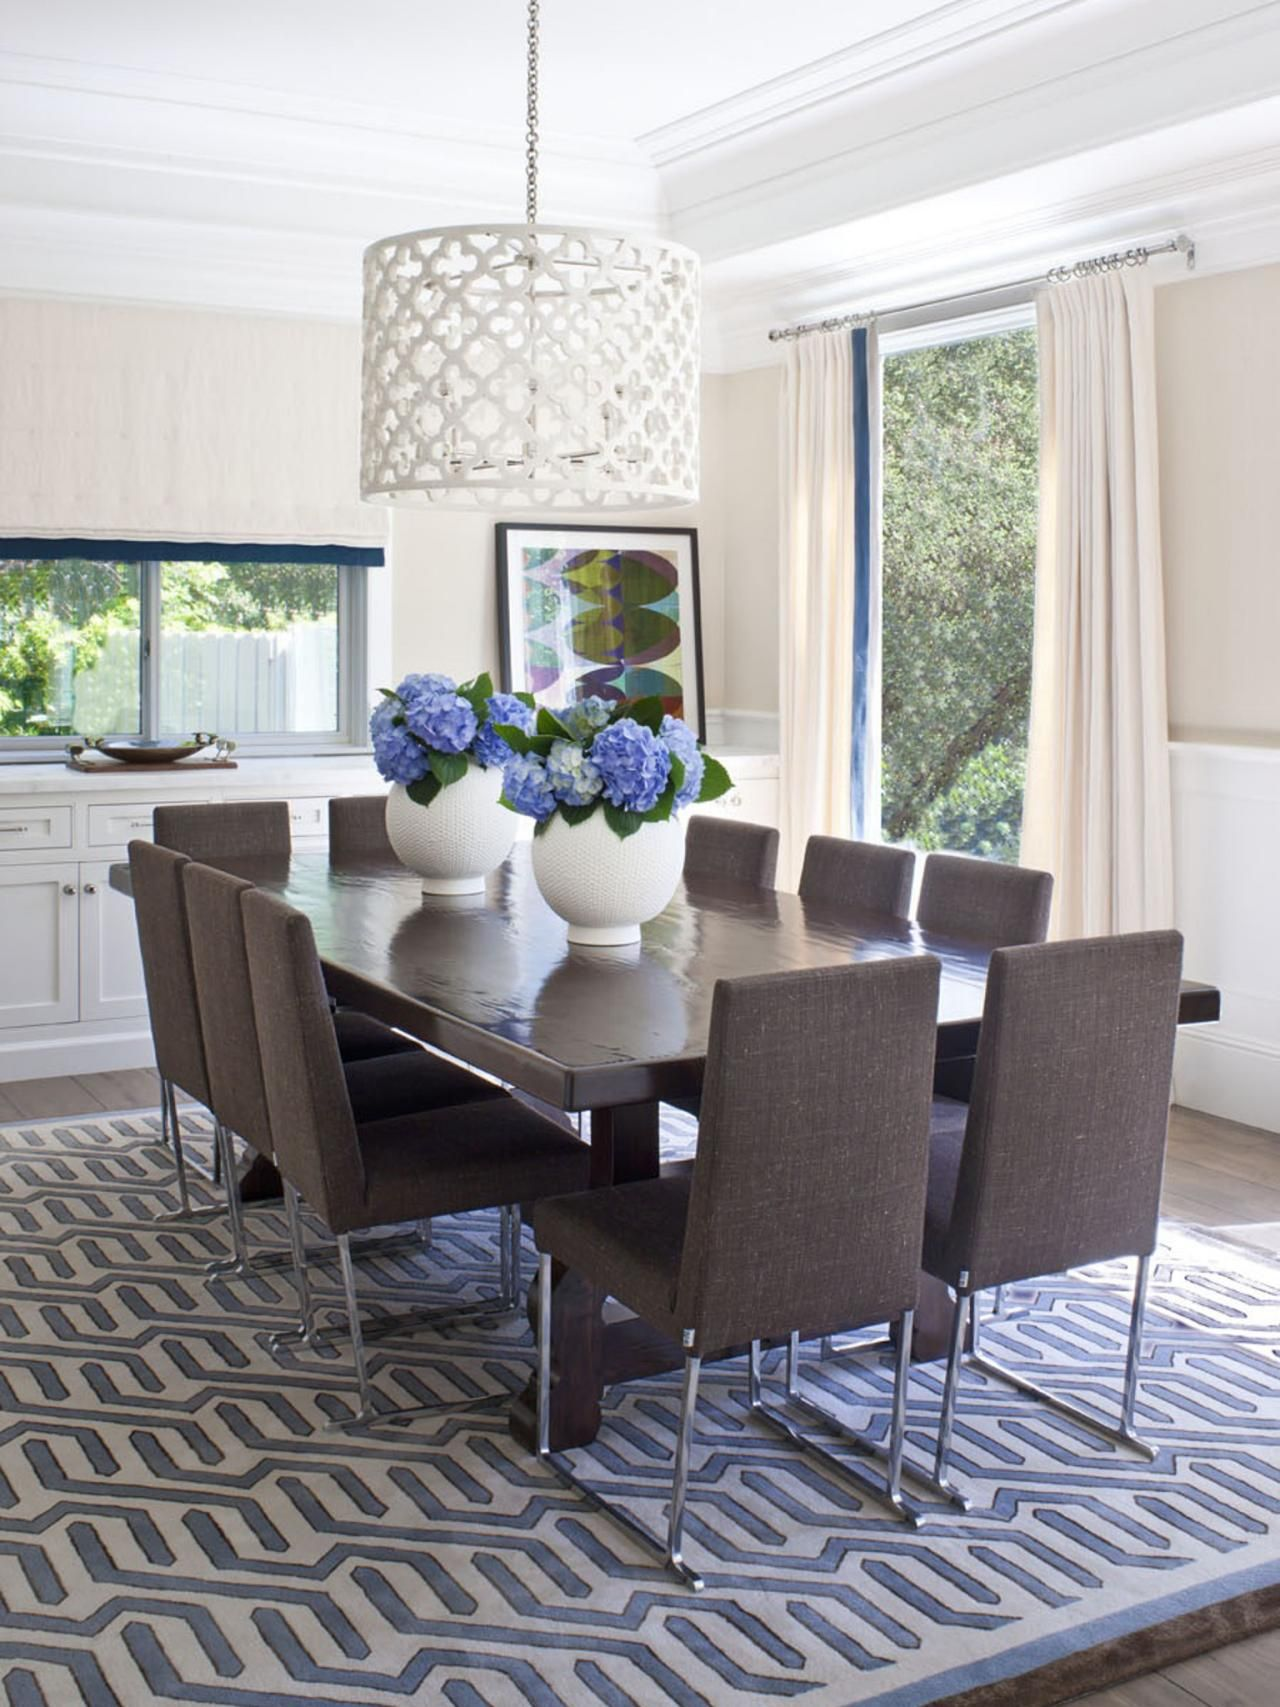 Contemporary Pendant Lighting For Dining Room Amazing Ten Brown Upholstered Chairs Add A Lively Fun Note To This Review